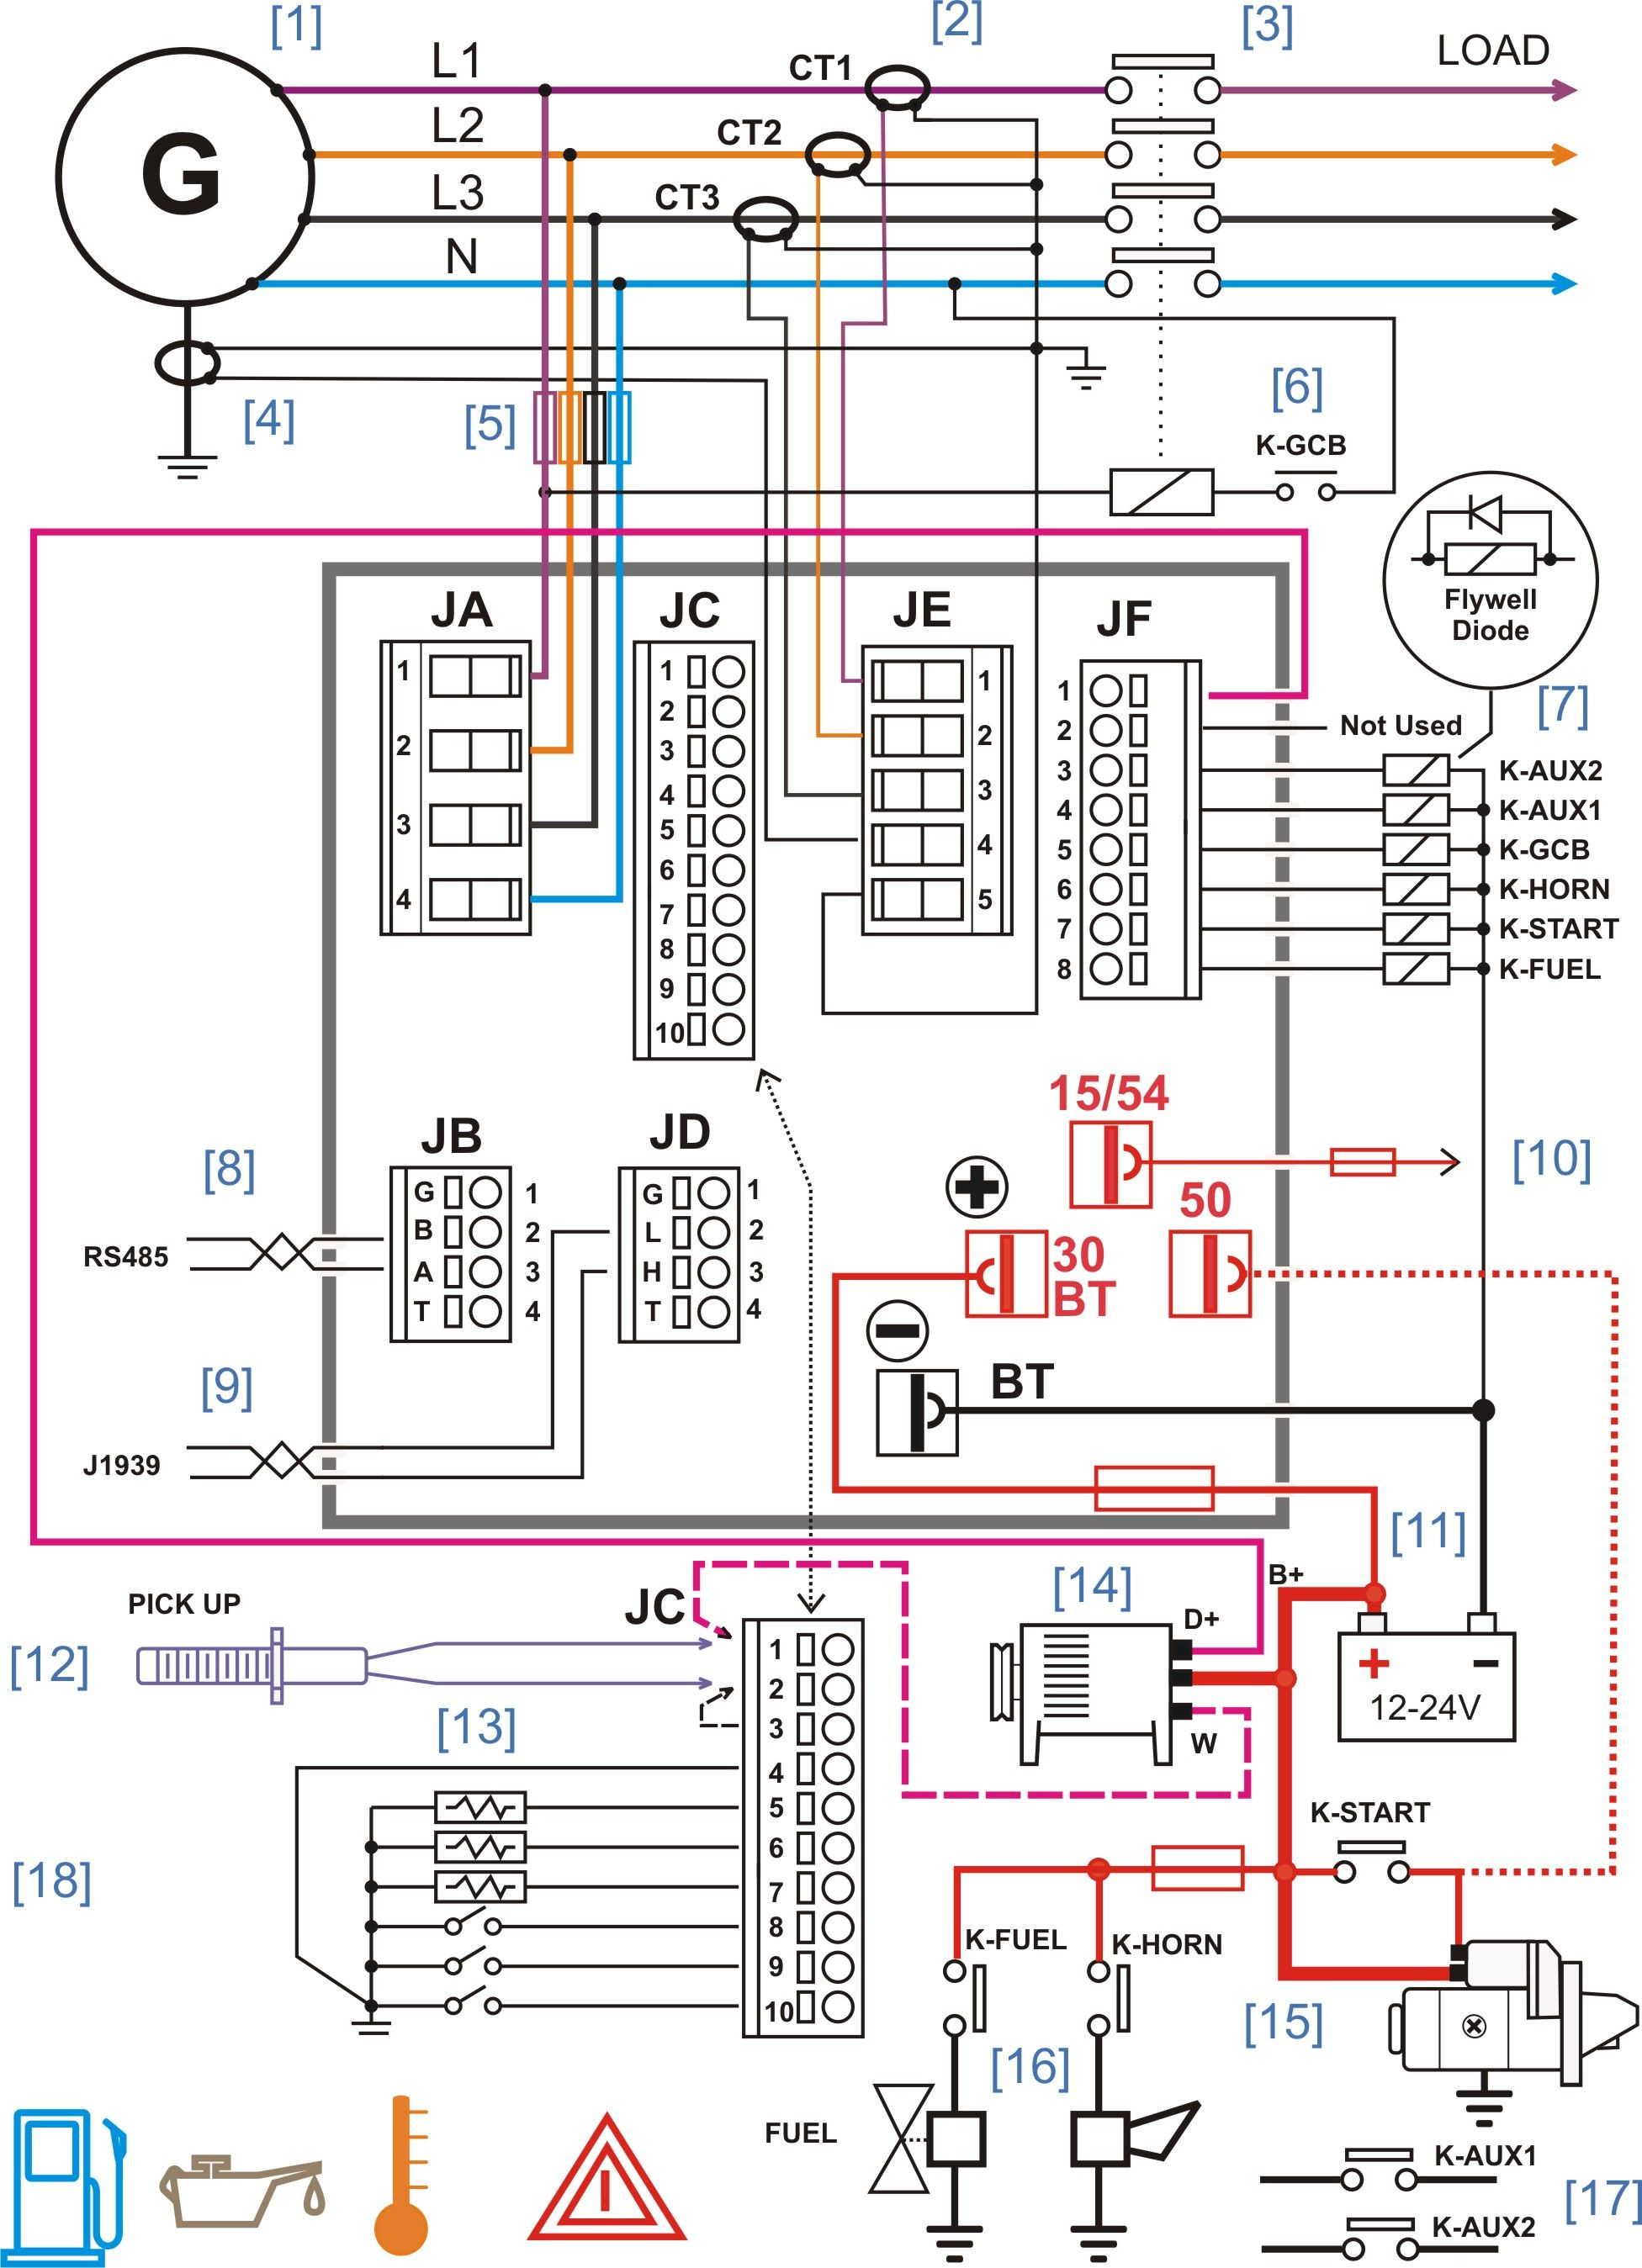 automatic standby generator wiring diagram Download-Diesel Generator Control Panel Wiring Diagram 15-s